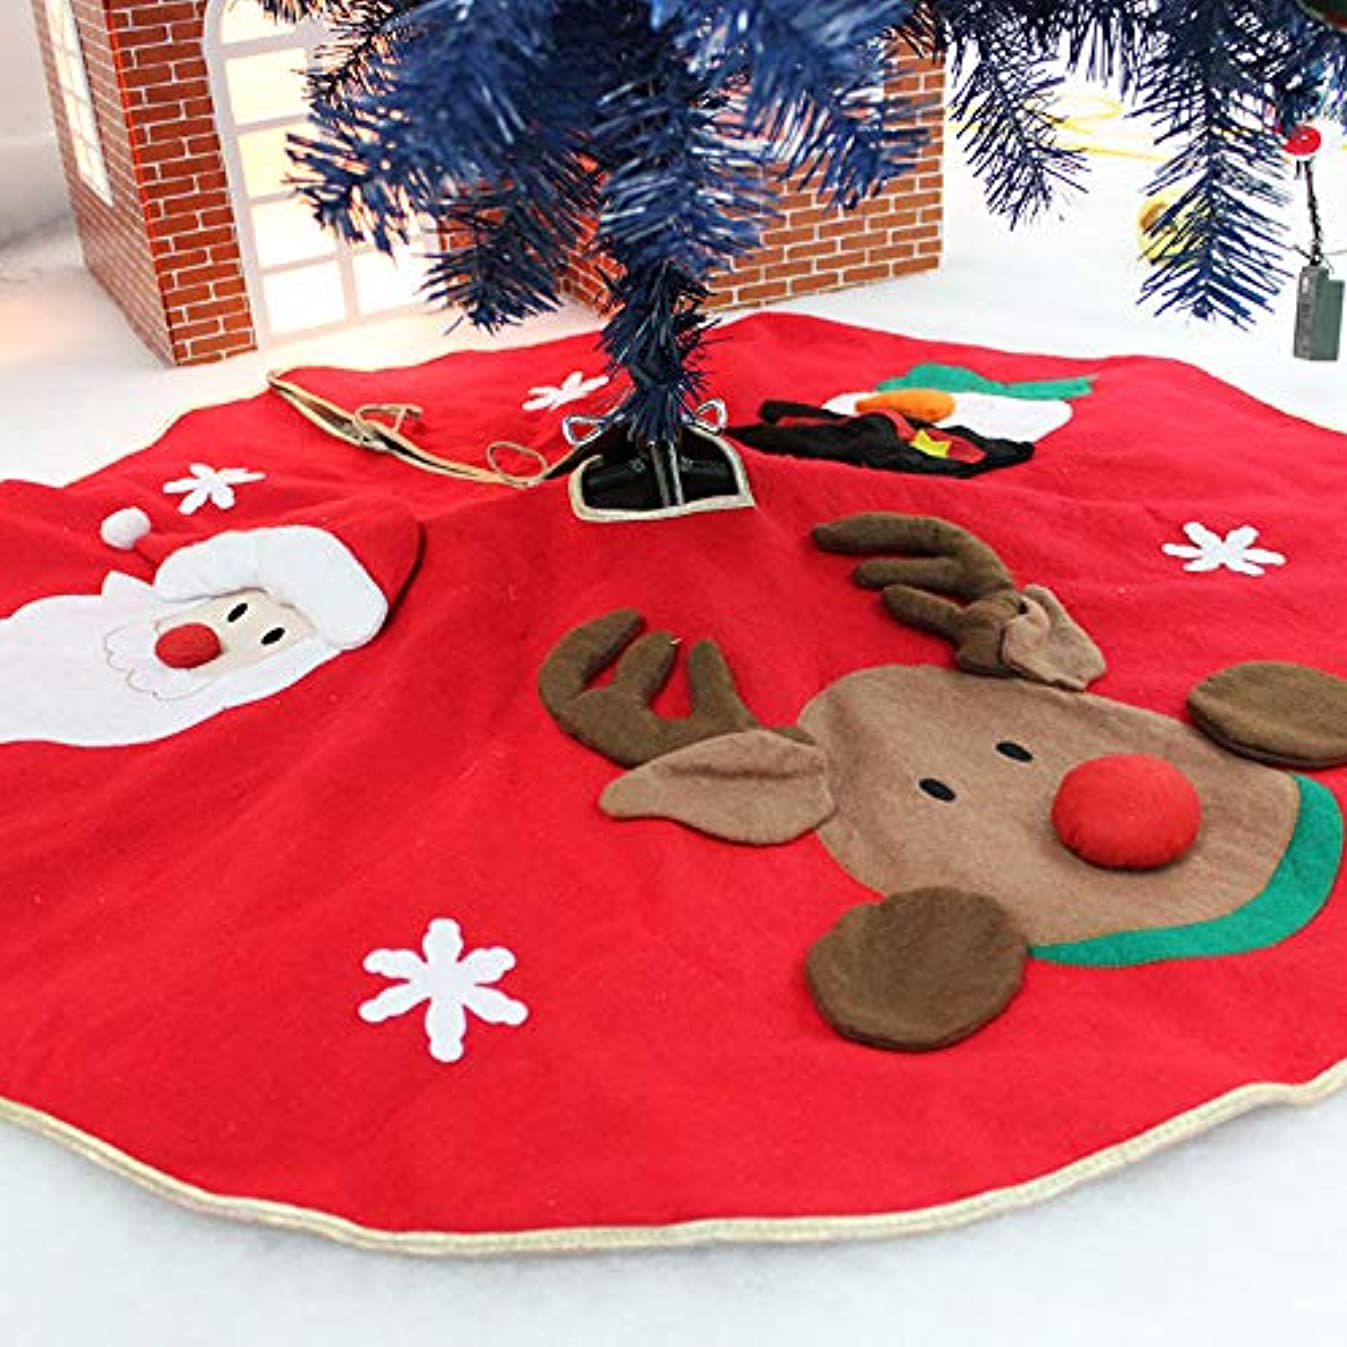 Amerzam Christmas Tree Skirt Mat Christmas Holiday Party Decoration (RED)